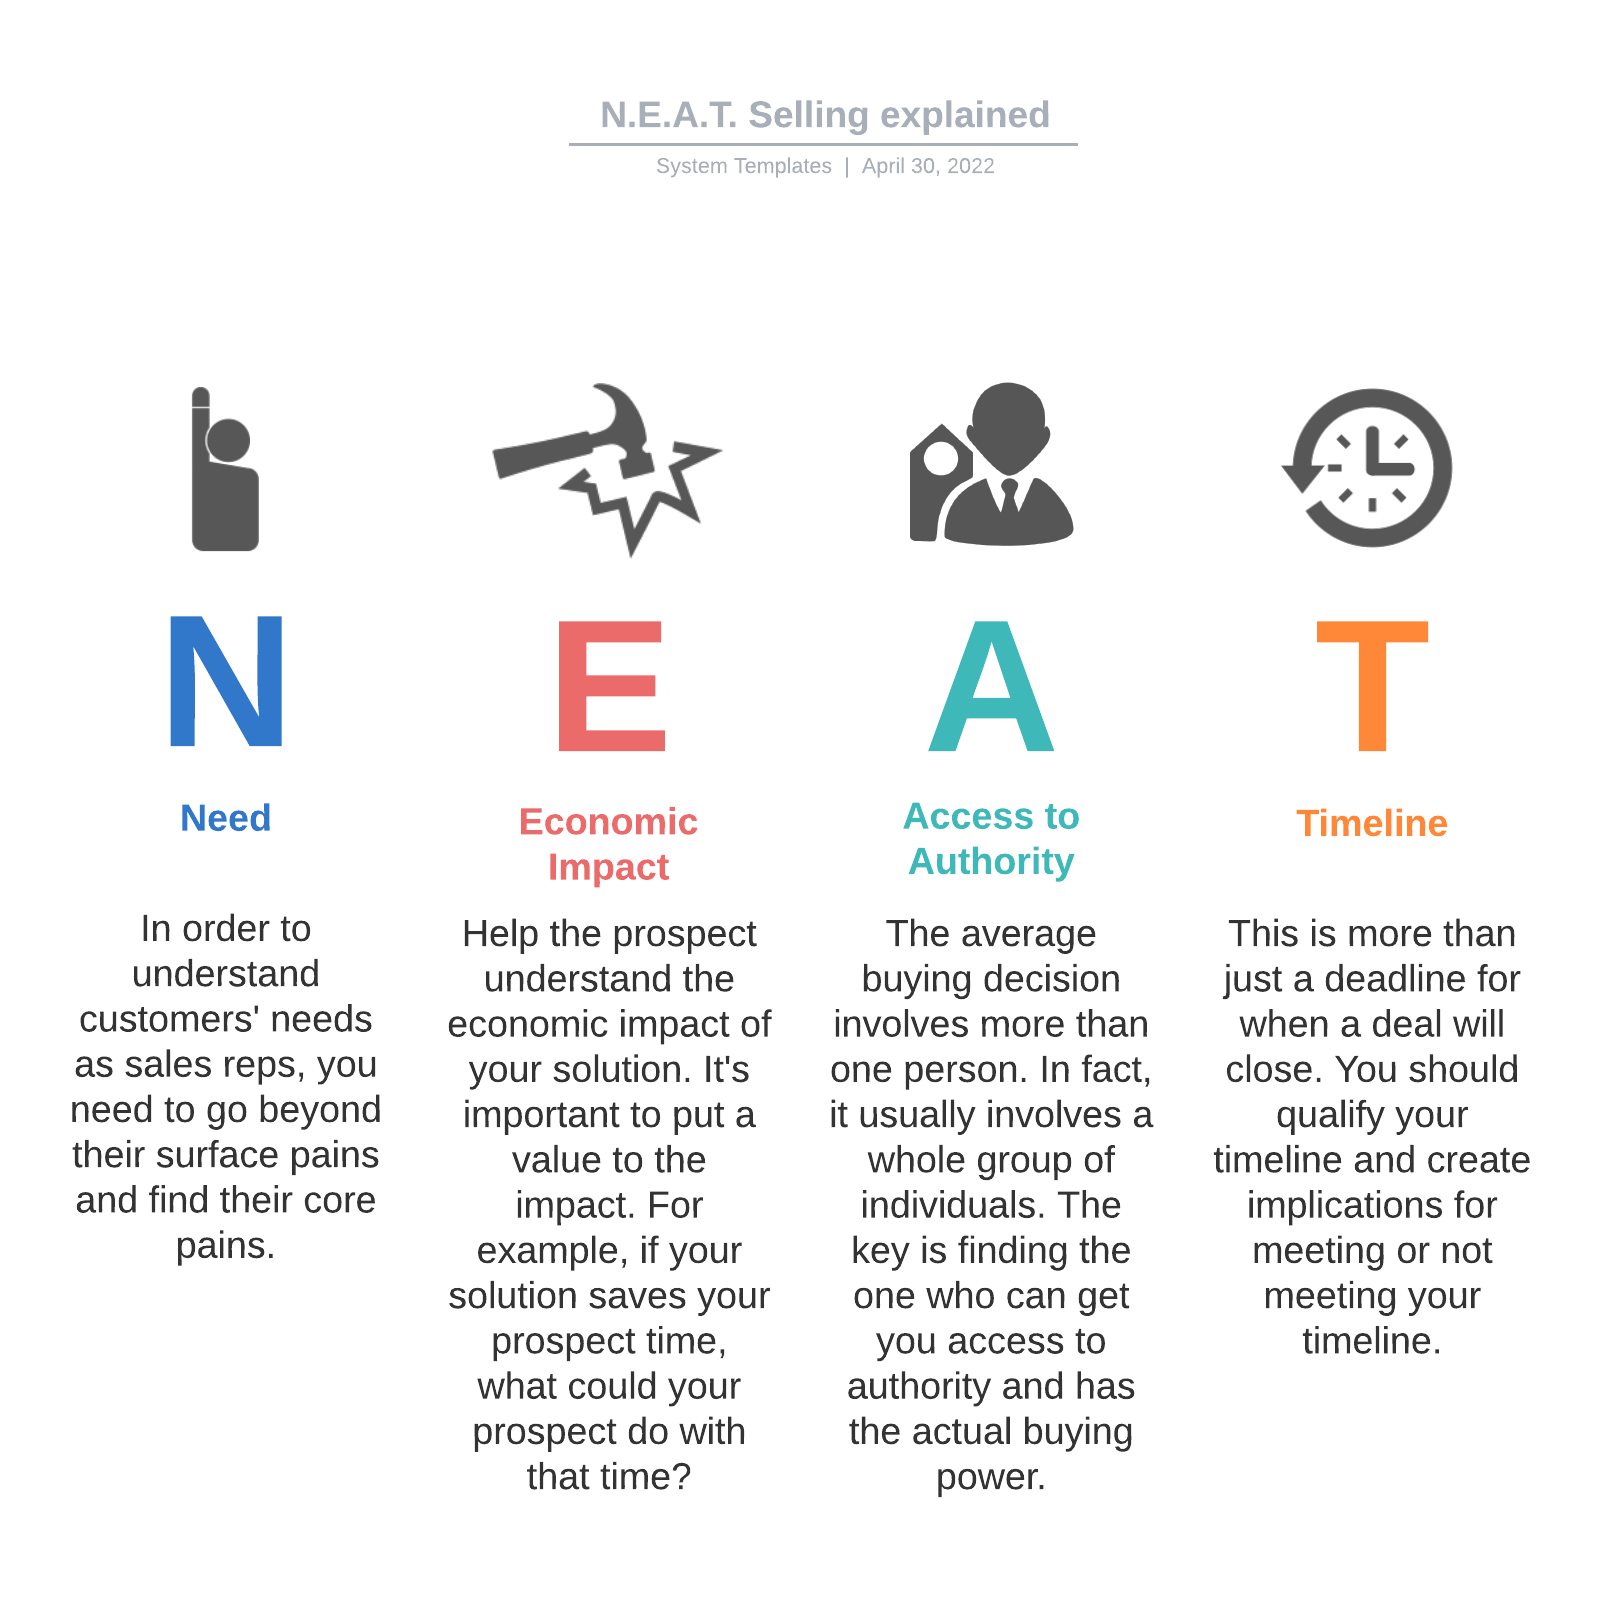 N.E.A.T. Selling explained